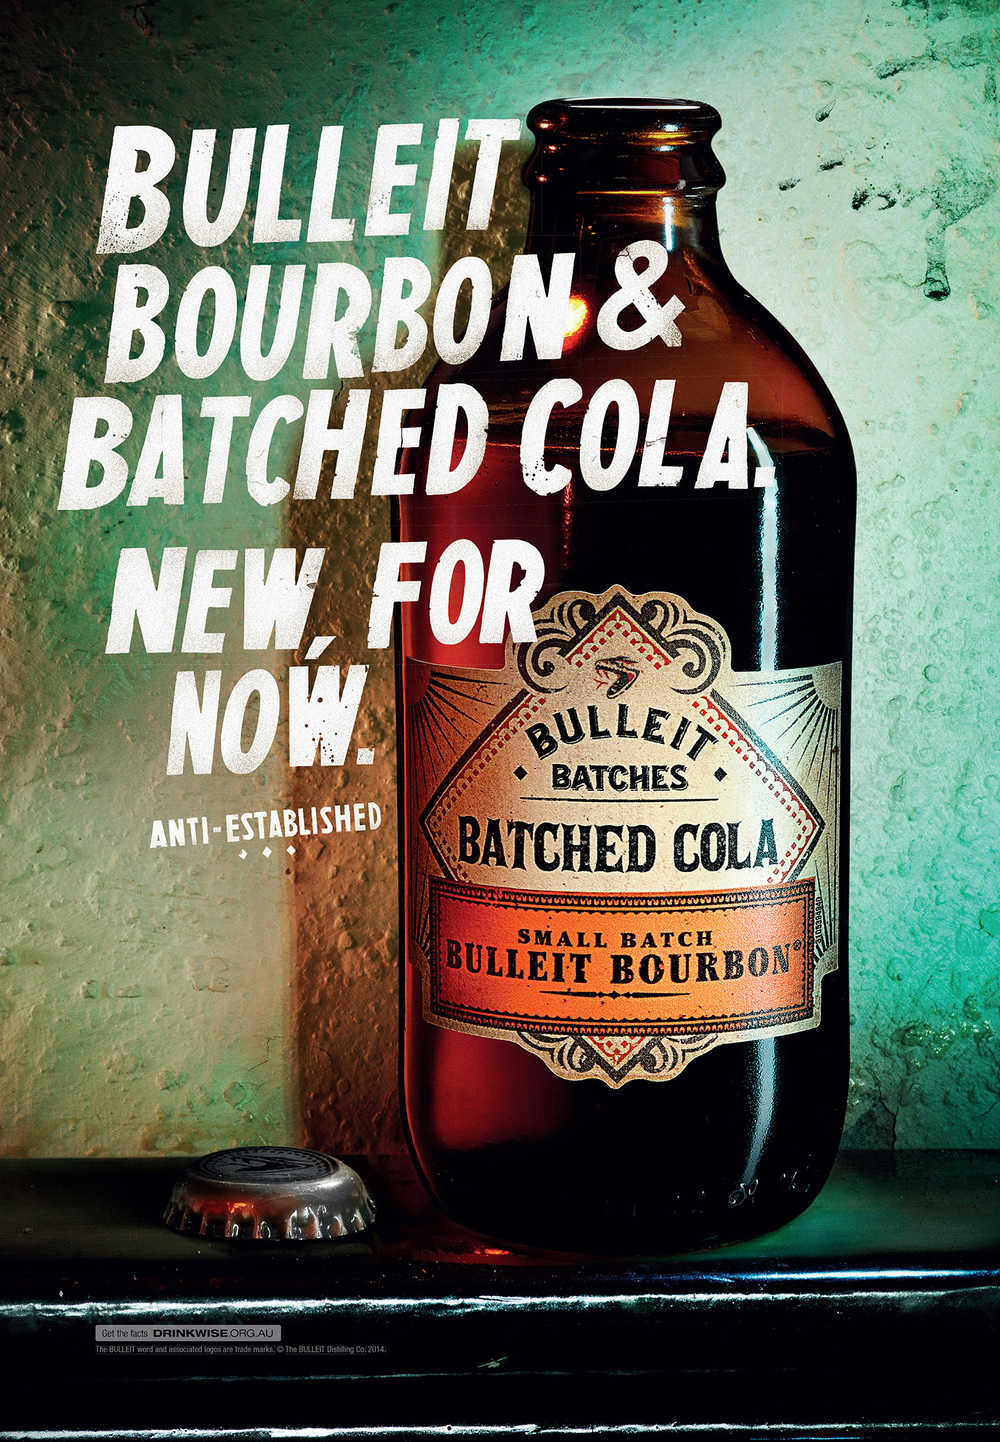 Bulleit Bourbon  Agency: Leo Burnett  Art Director: Ben Alden  Copywriter: Michael Dawson  Retouching: Cream Retouching